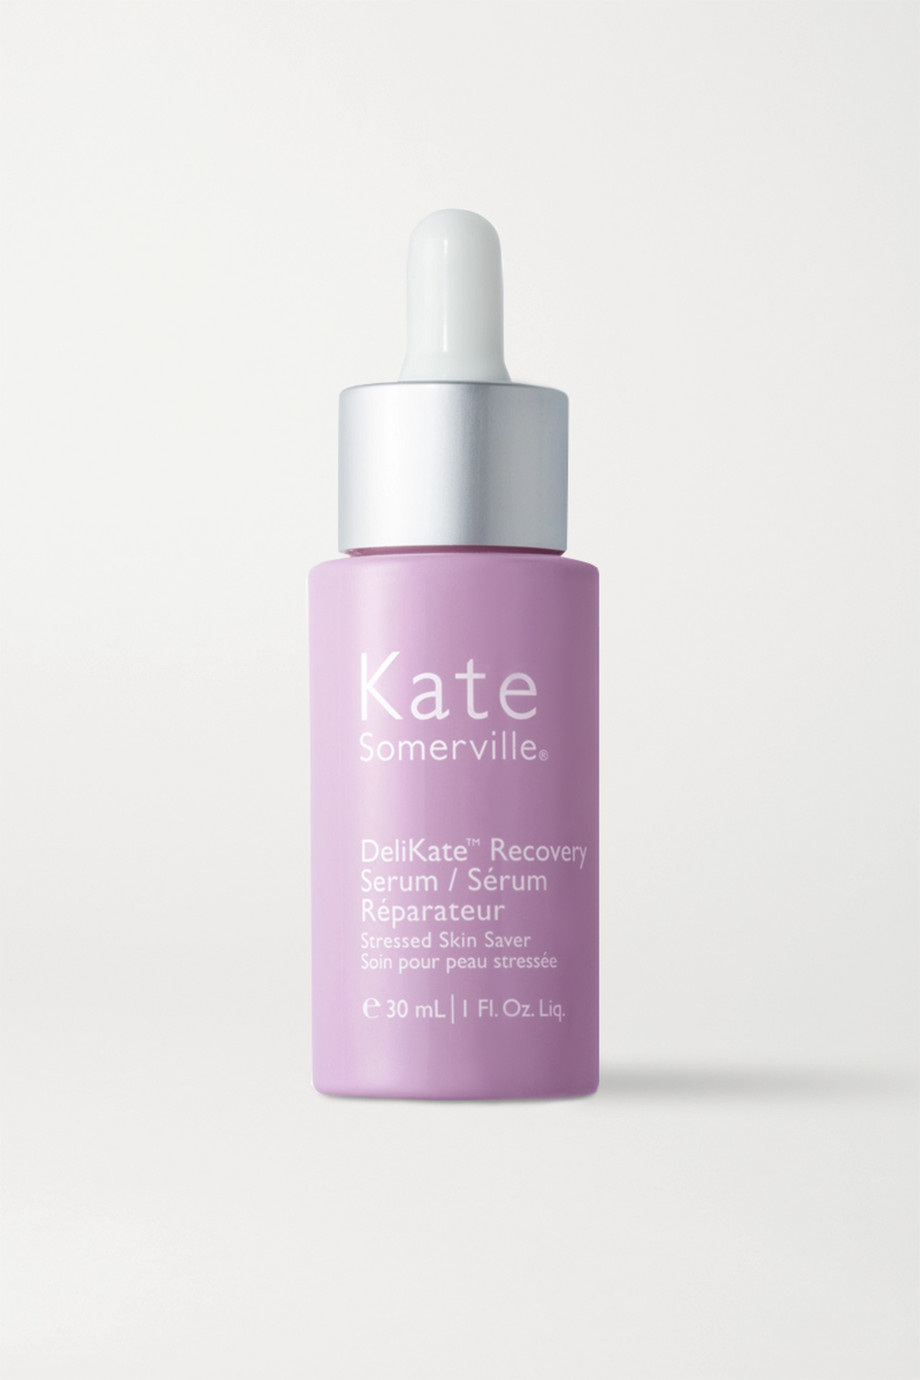 Kate Somerville DeliKate Recovery Serum, 30ml